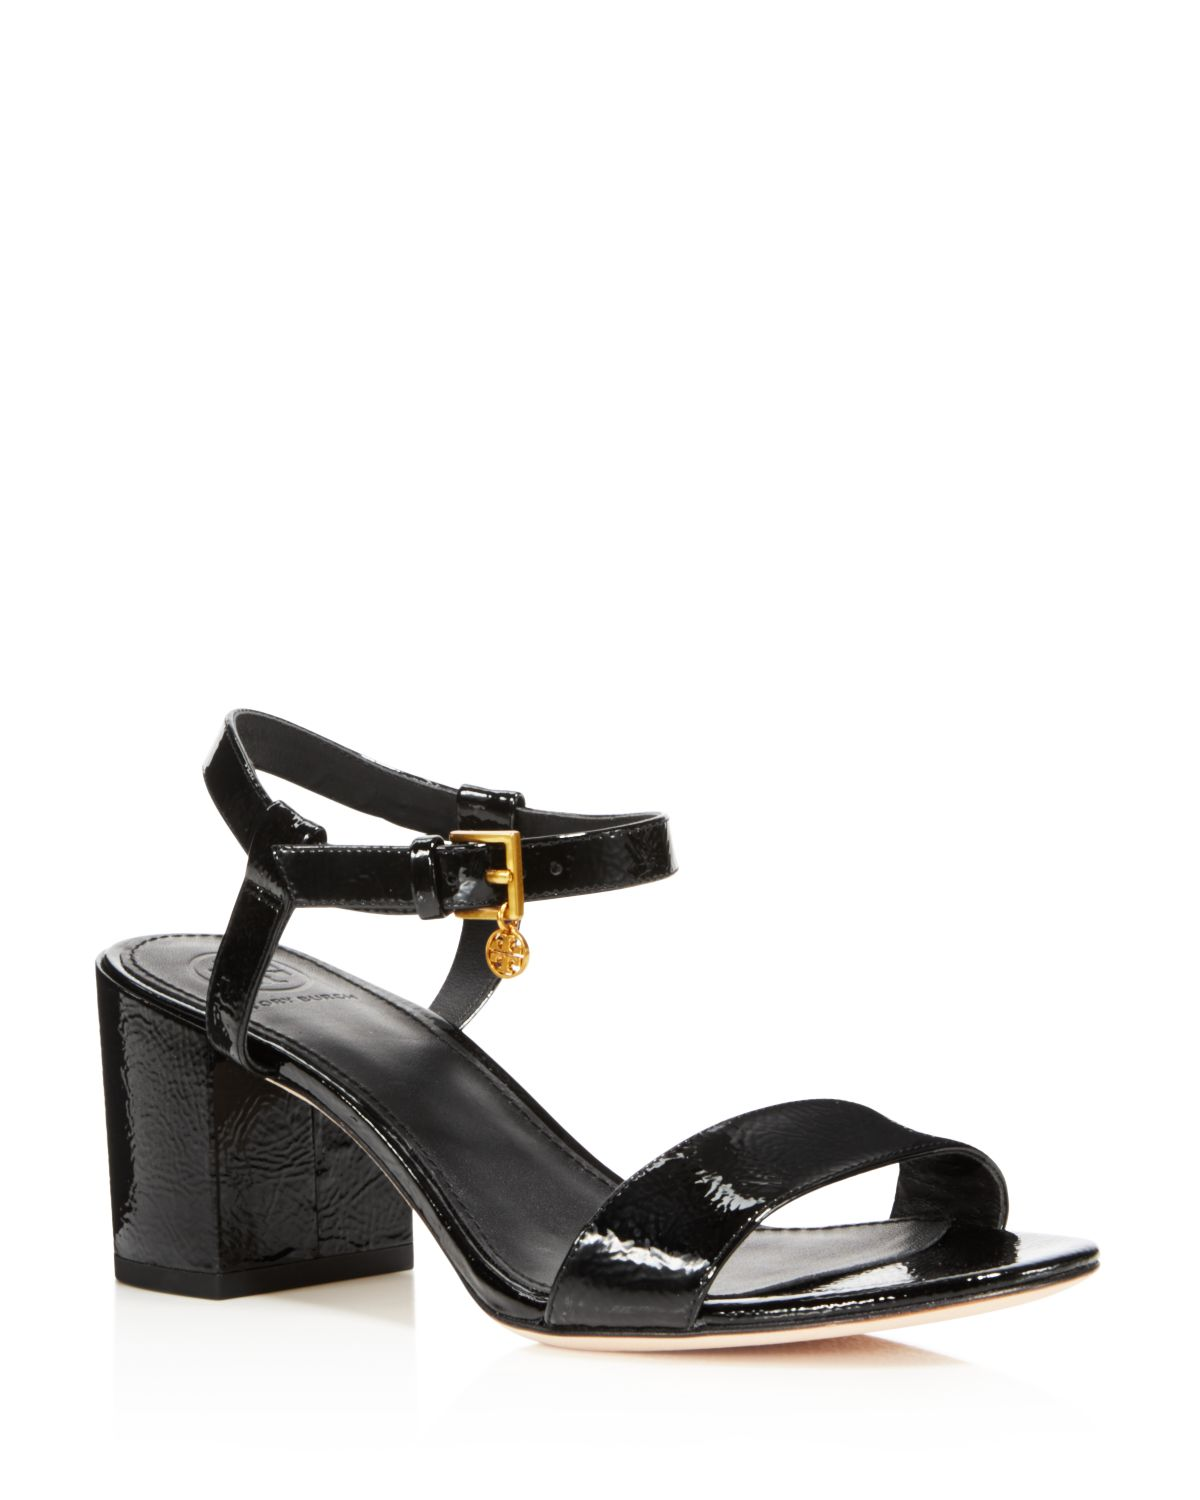 Tory Burch Women's Laurel Patent Leather Ankle Strap Sandals - 100% Exclusive